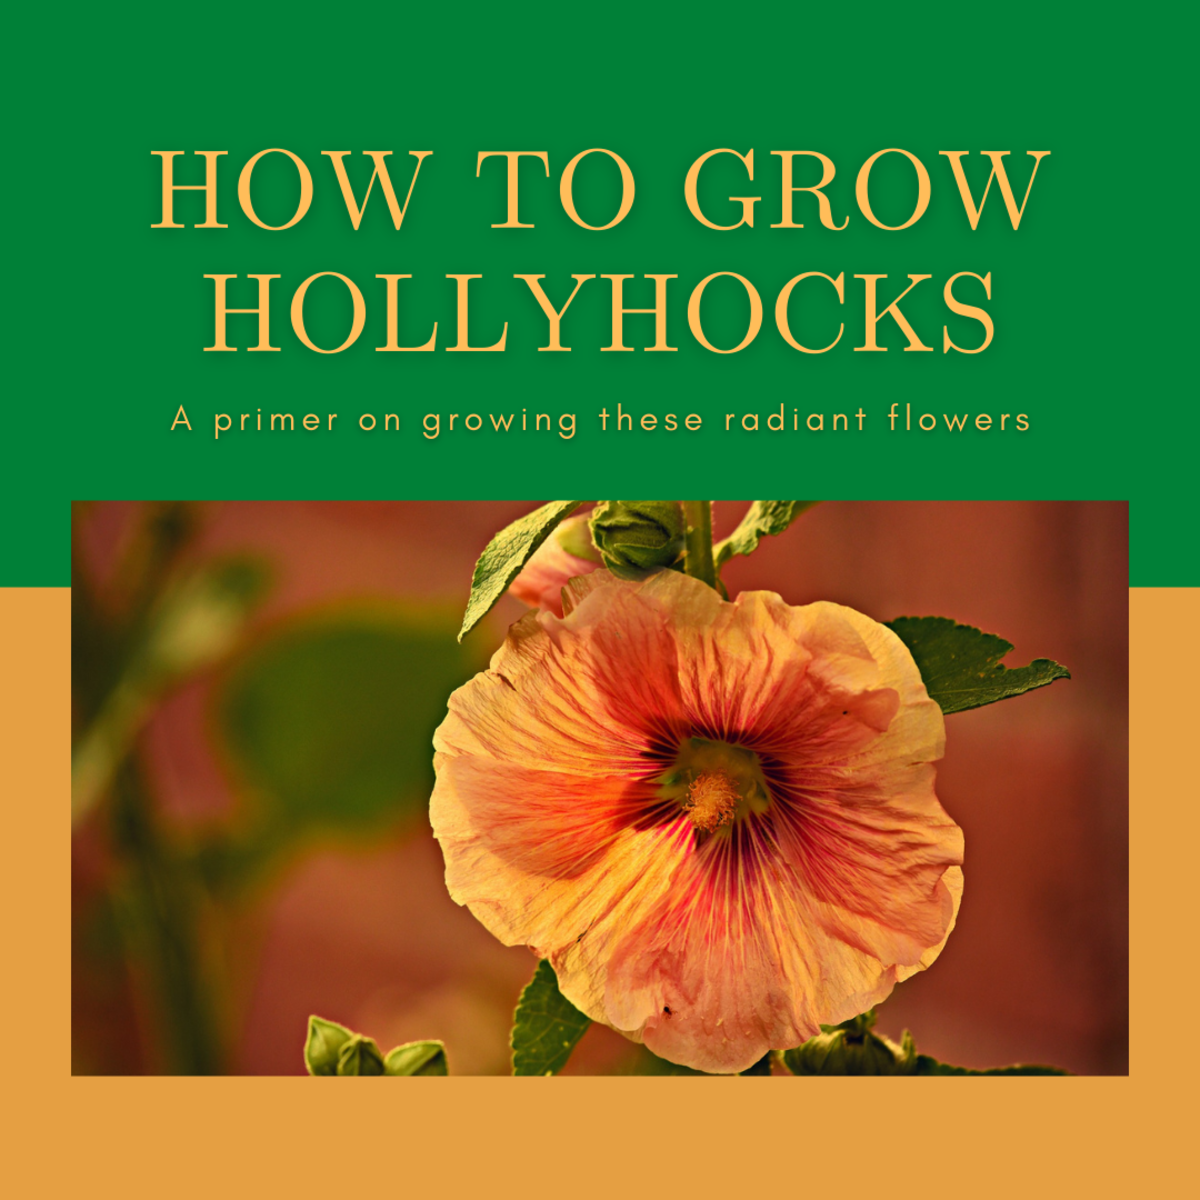 This guide will provide you with all the information you need to grow stunning hollyhock flowers.